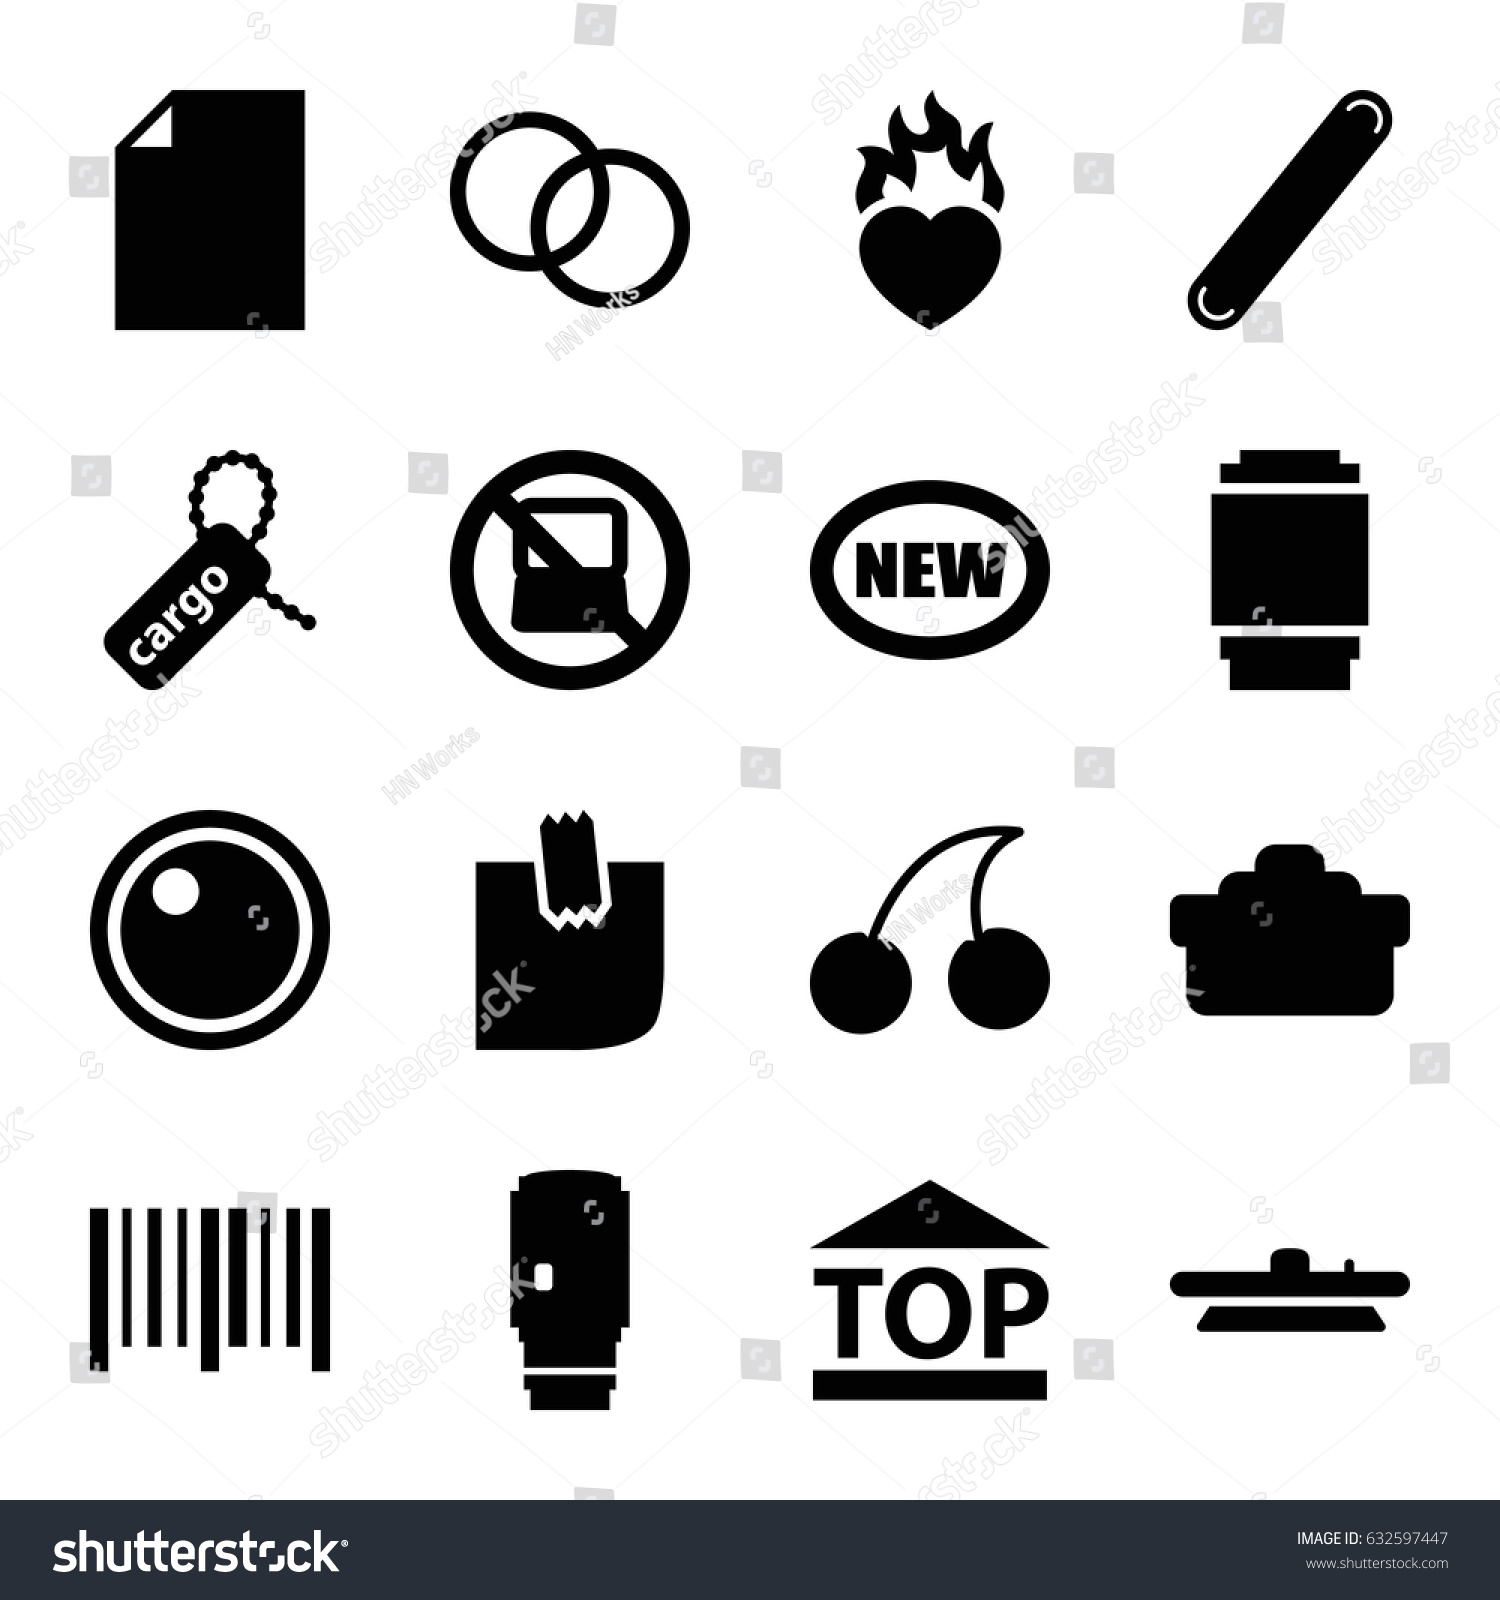 Sticker icons set set 16 sticker stock vector 632597447 shutterstock sticker icons set set of 16 sticker filled icons such as no laptop cherry buycottarizona Choice Image